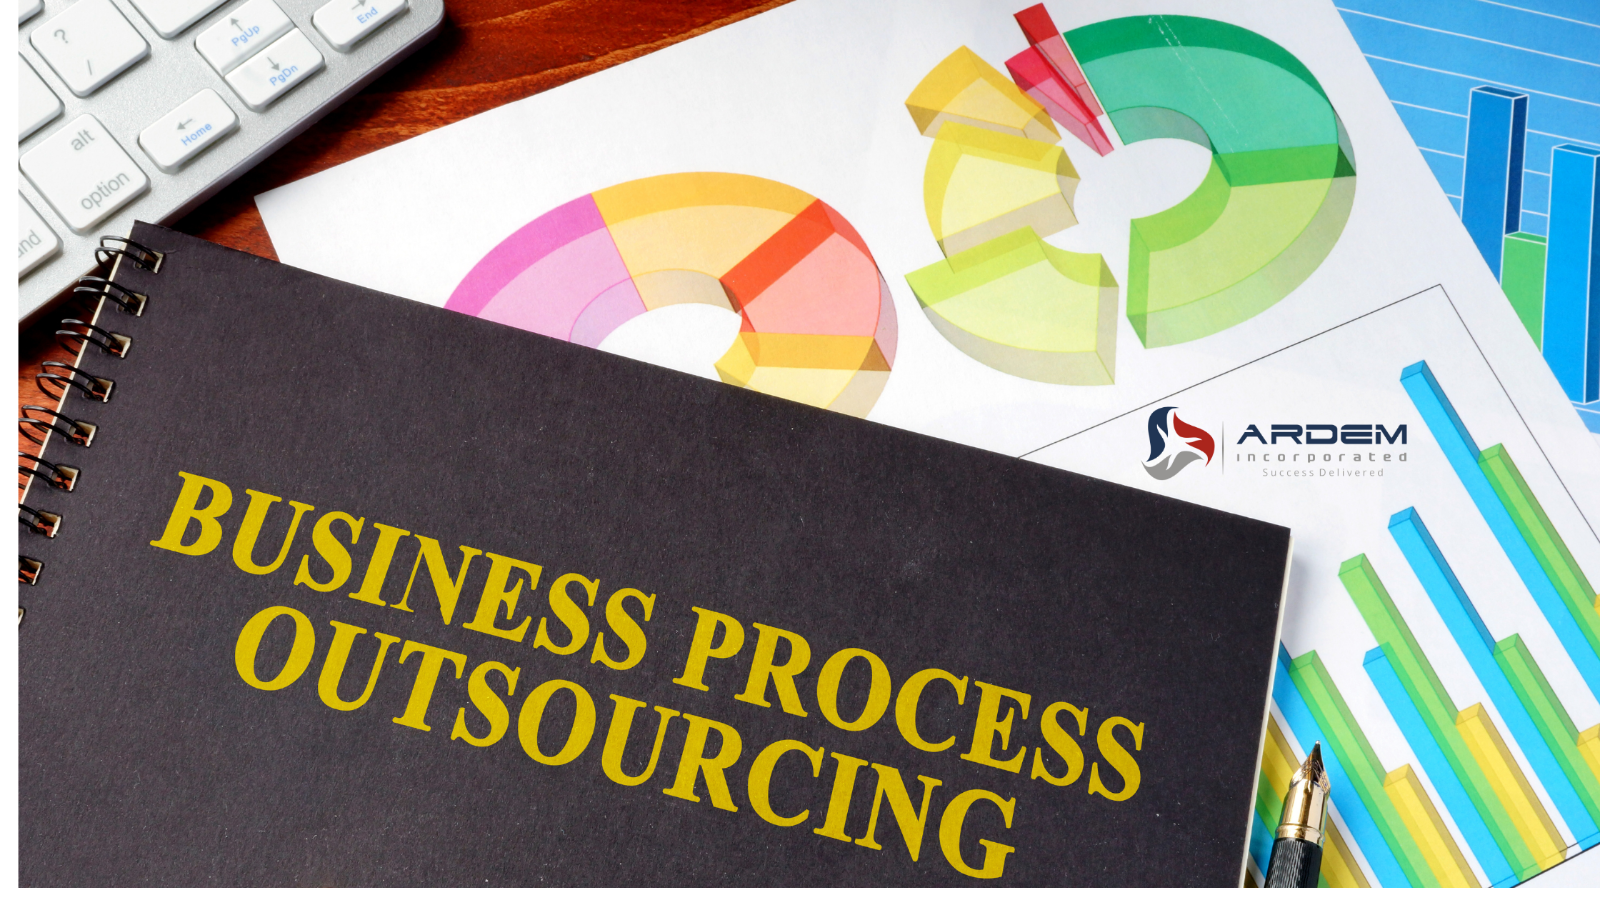 The 2021 Guide to Business Process Outsourcing